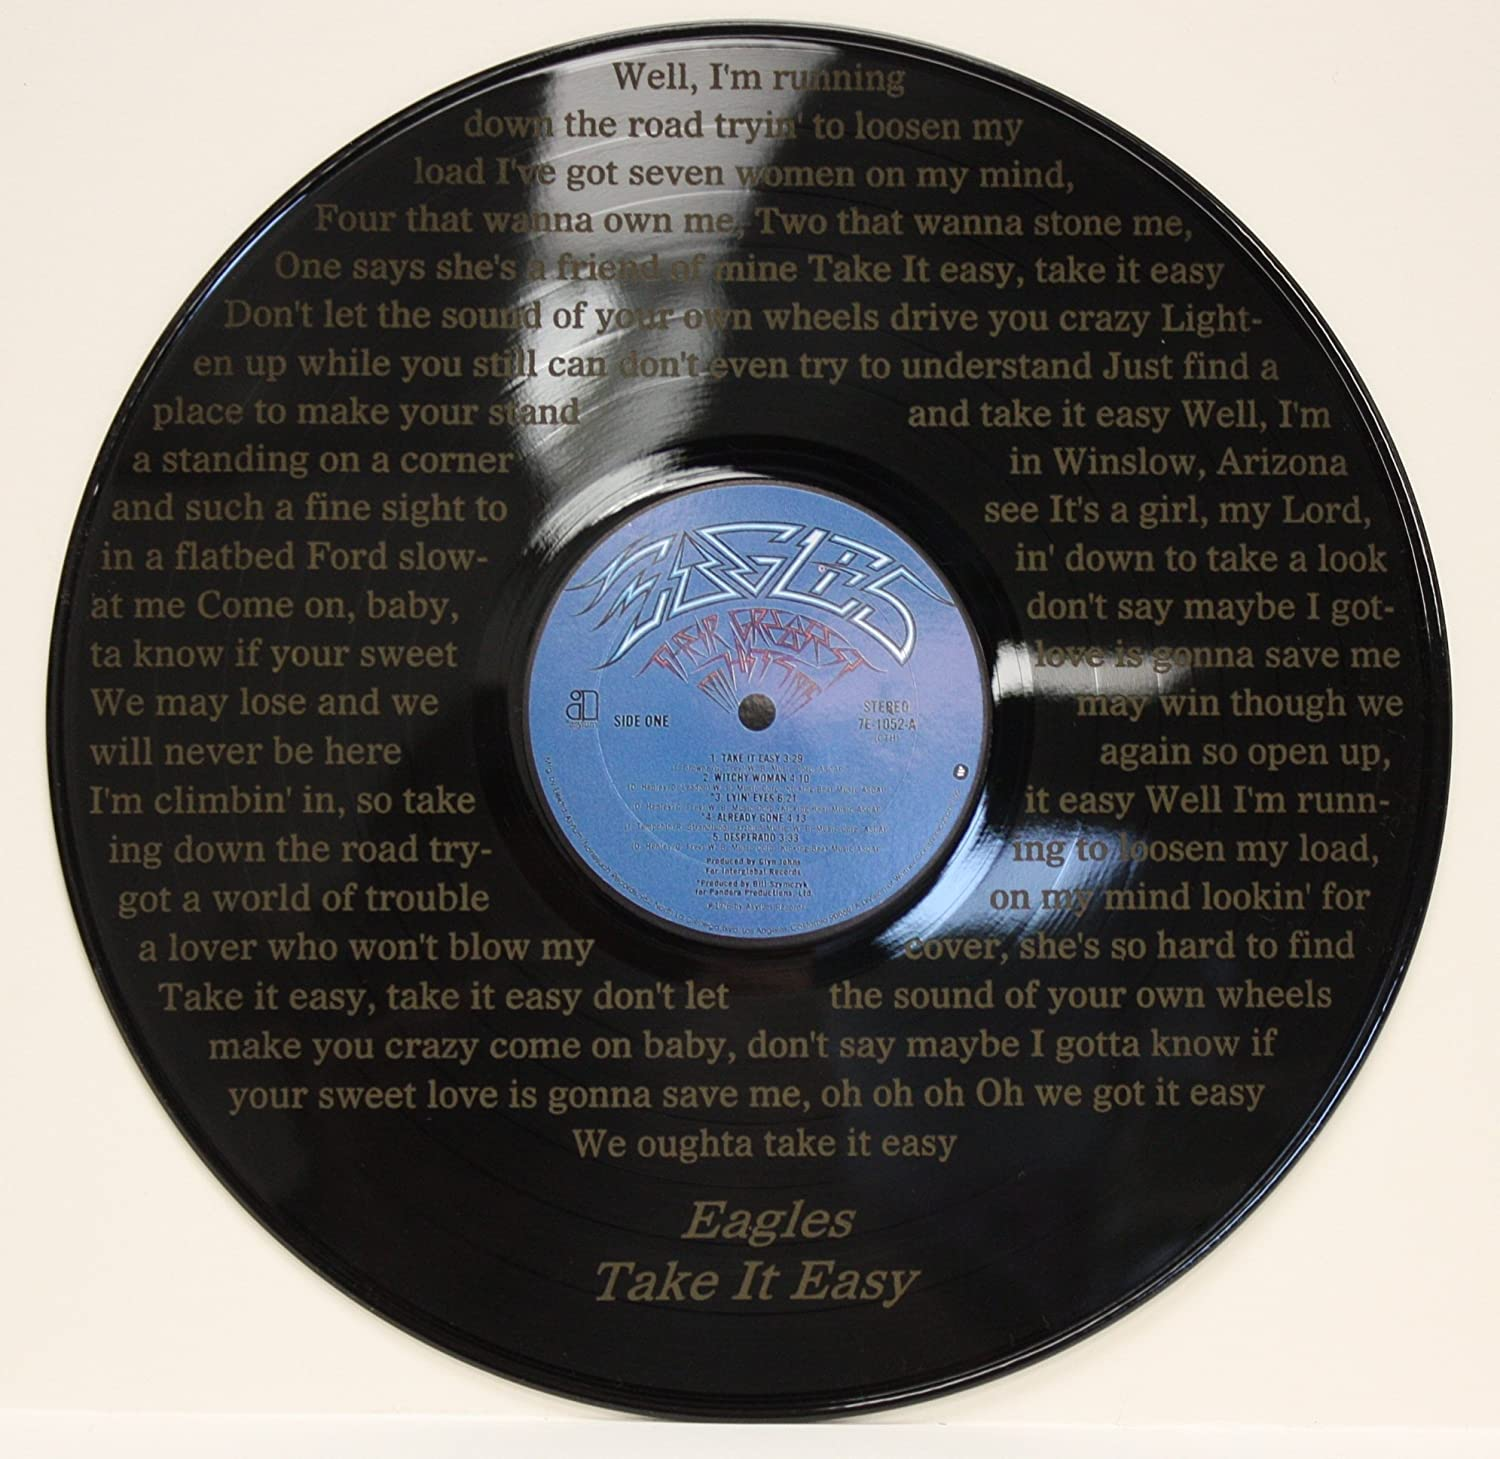 Eagles'Take It Easy' Black Vinyl 12' LP With The Words To The Hit Song Laser Etched Into The Record Unique Wall Hanging Gold Record Outlet